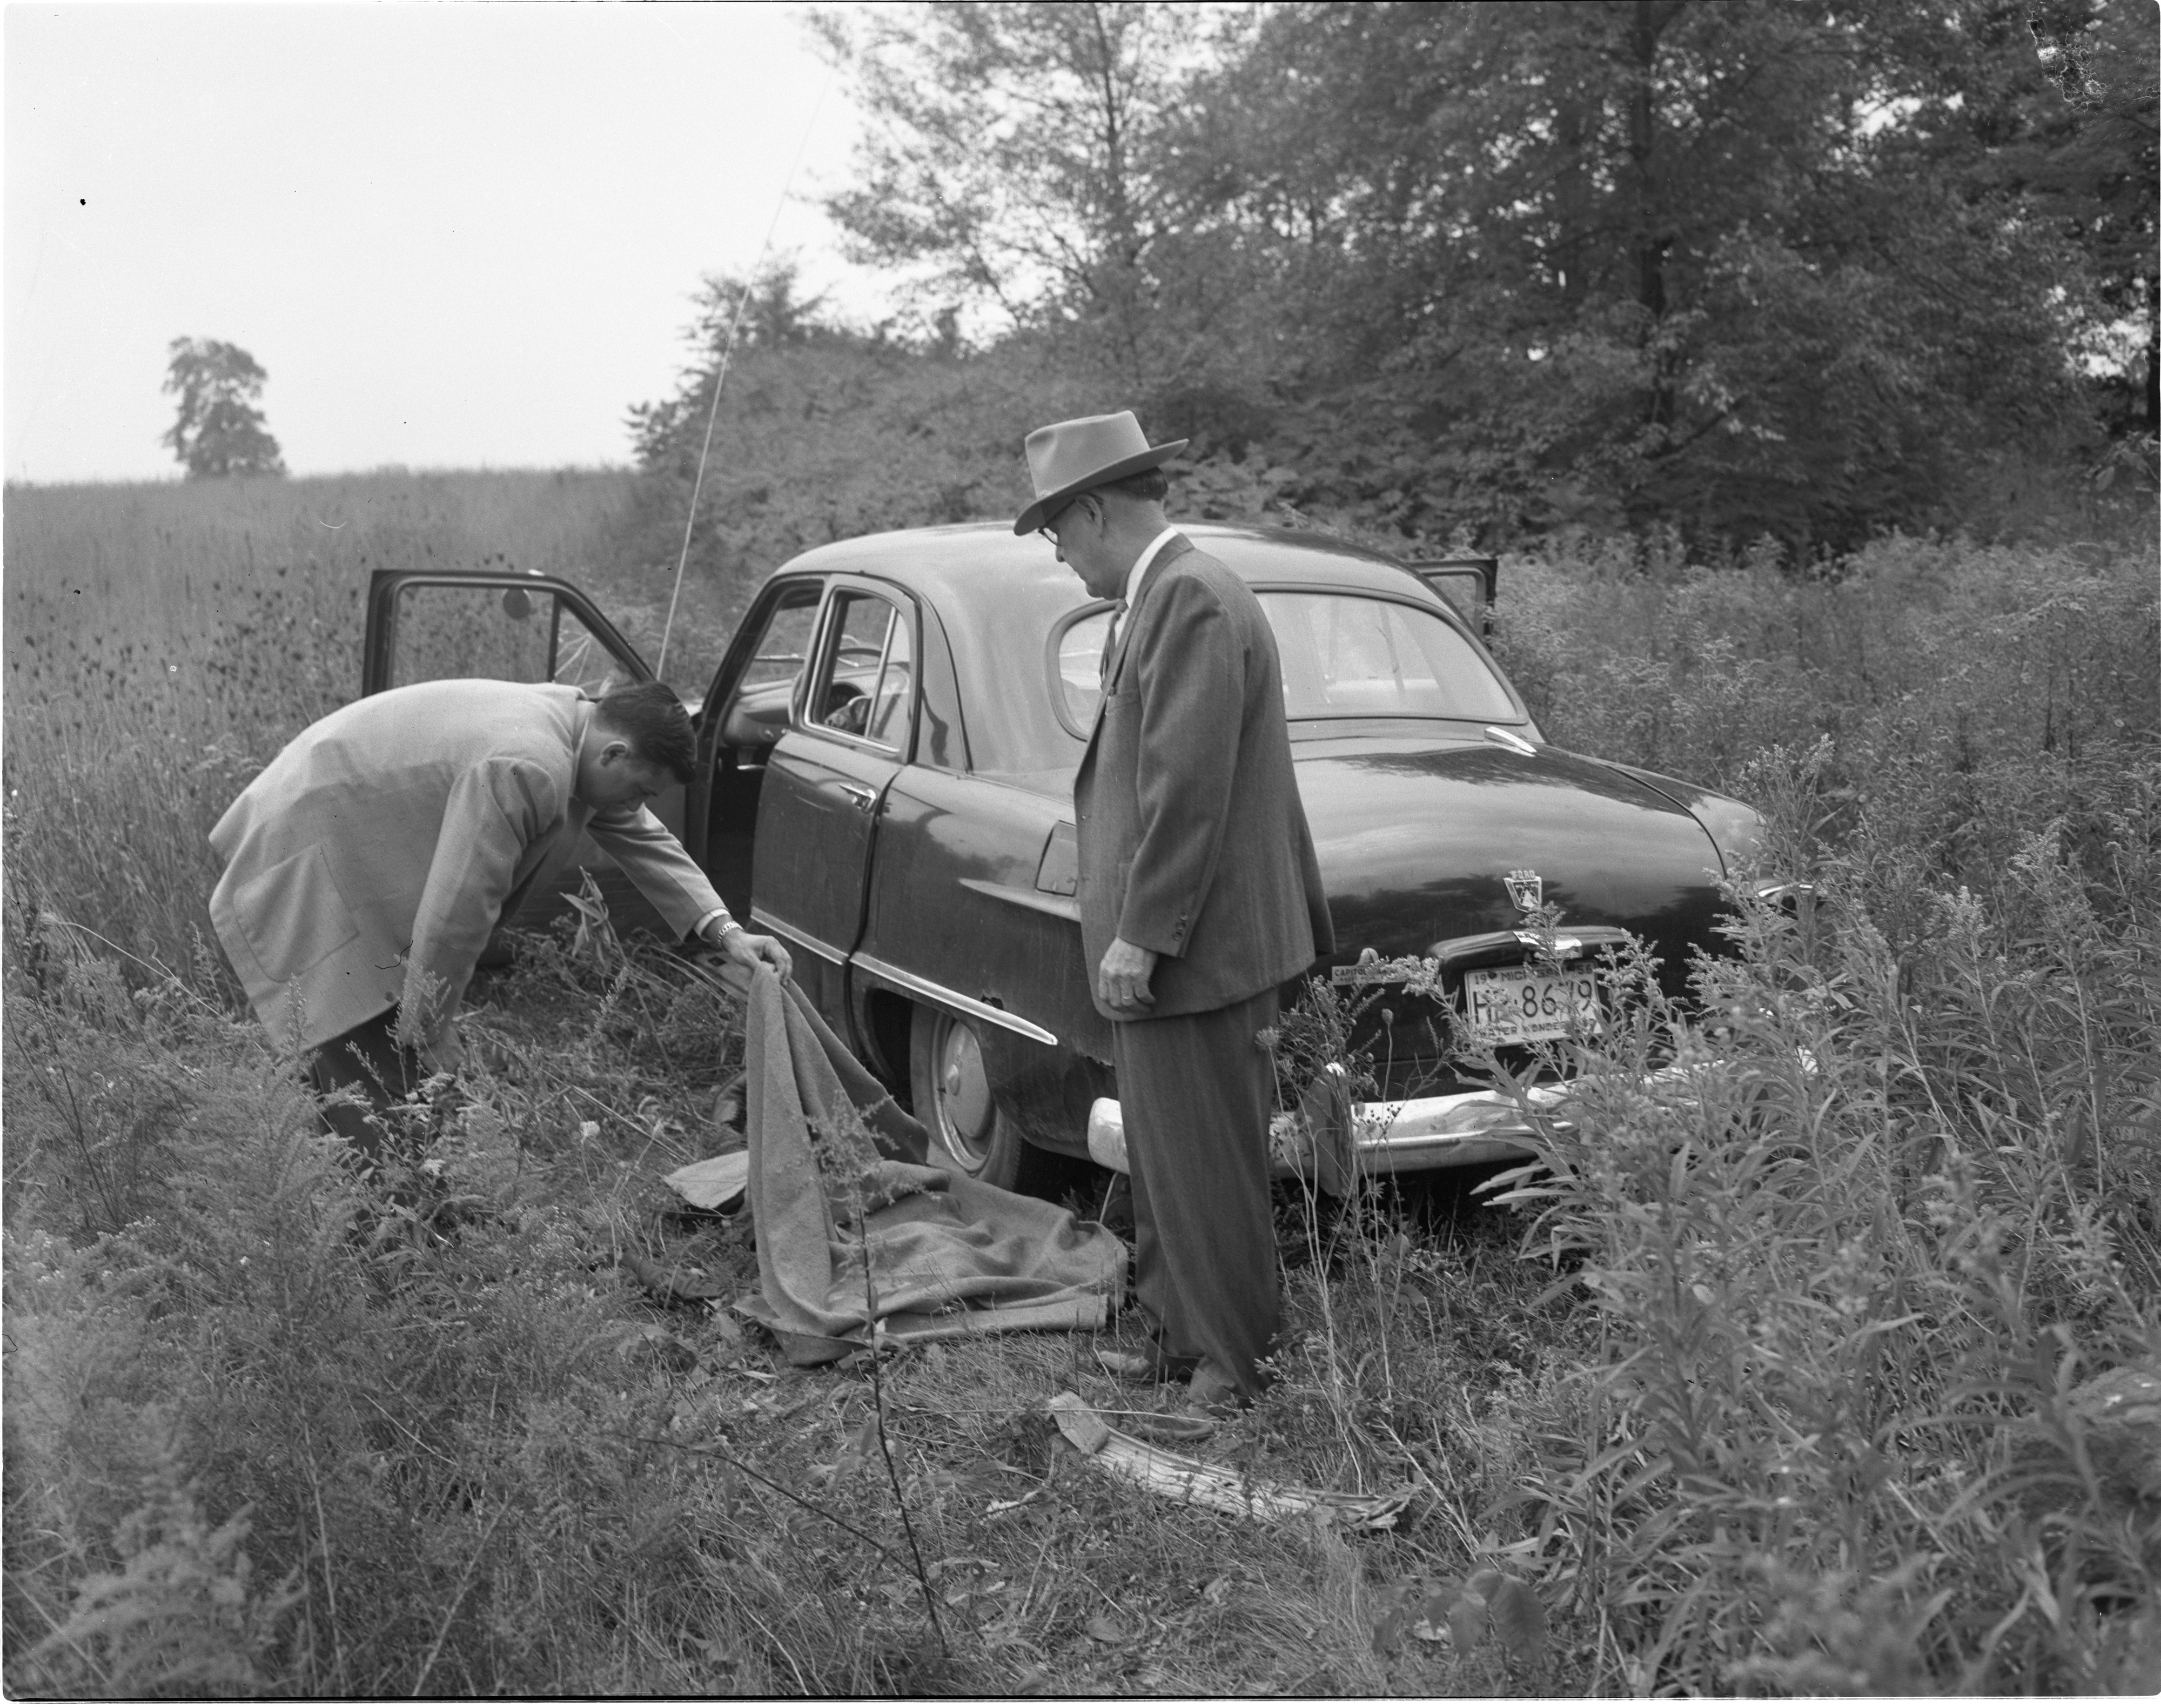 Undersheriff Charles Shaw & Detective Lt. Melvin Fuller Examine The Body Of Dell Cain In Willow Village, September 1956 image